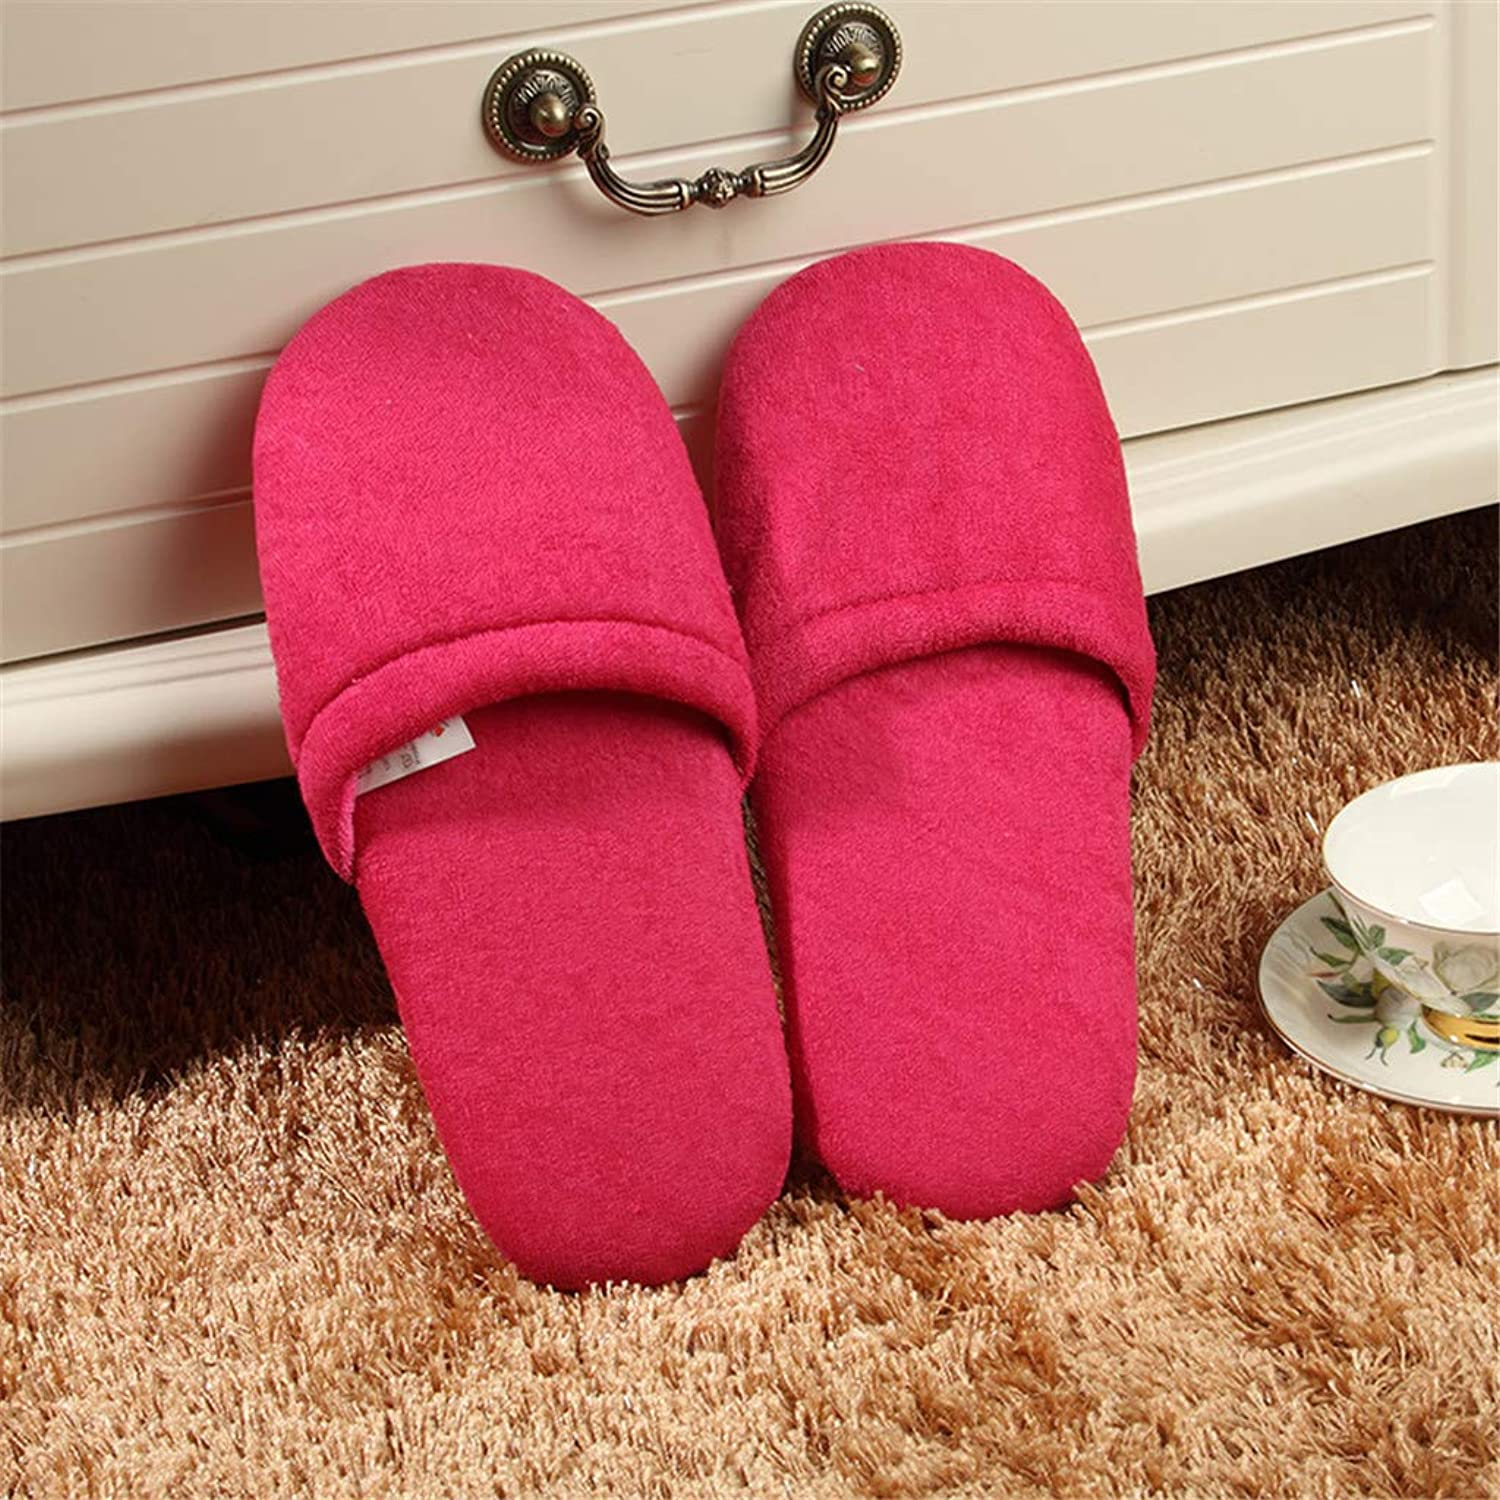 10 Pairs, Non-Slip Spa Guest Slippers Home Hospitality Floor colorful Soft Bread Slippers,010